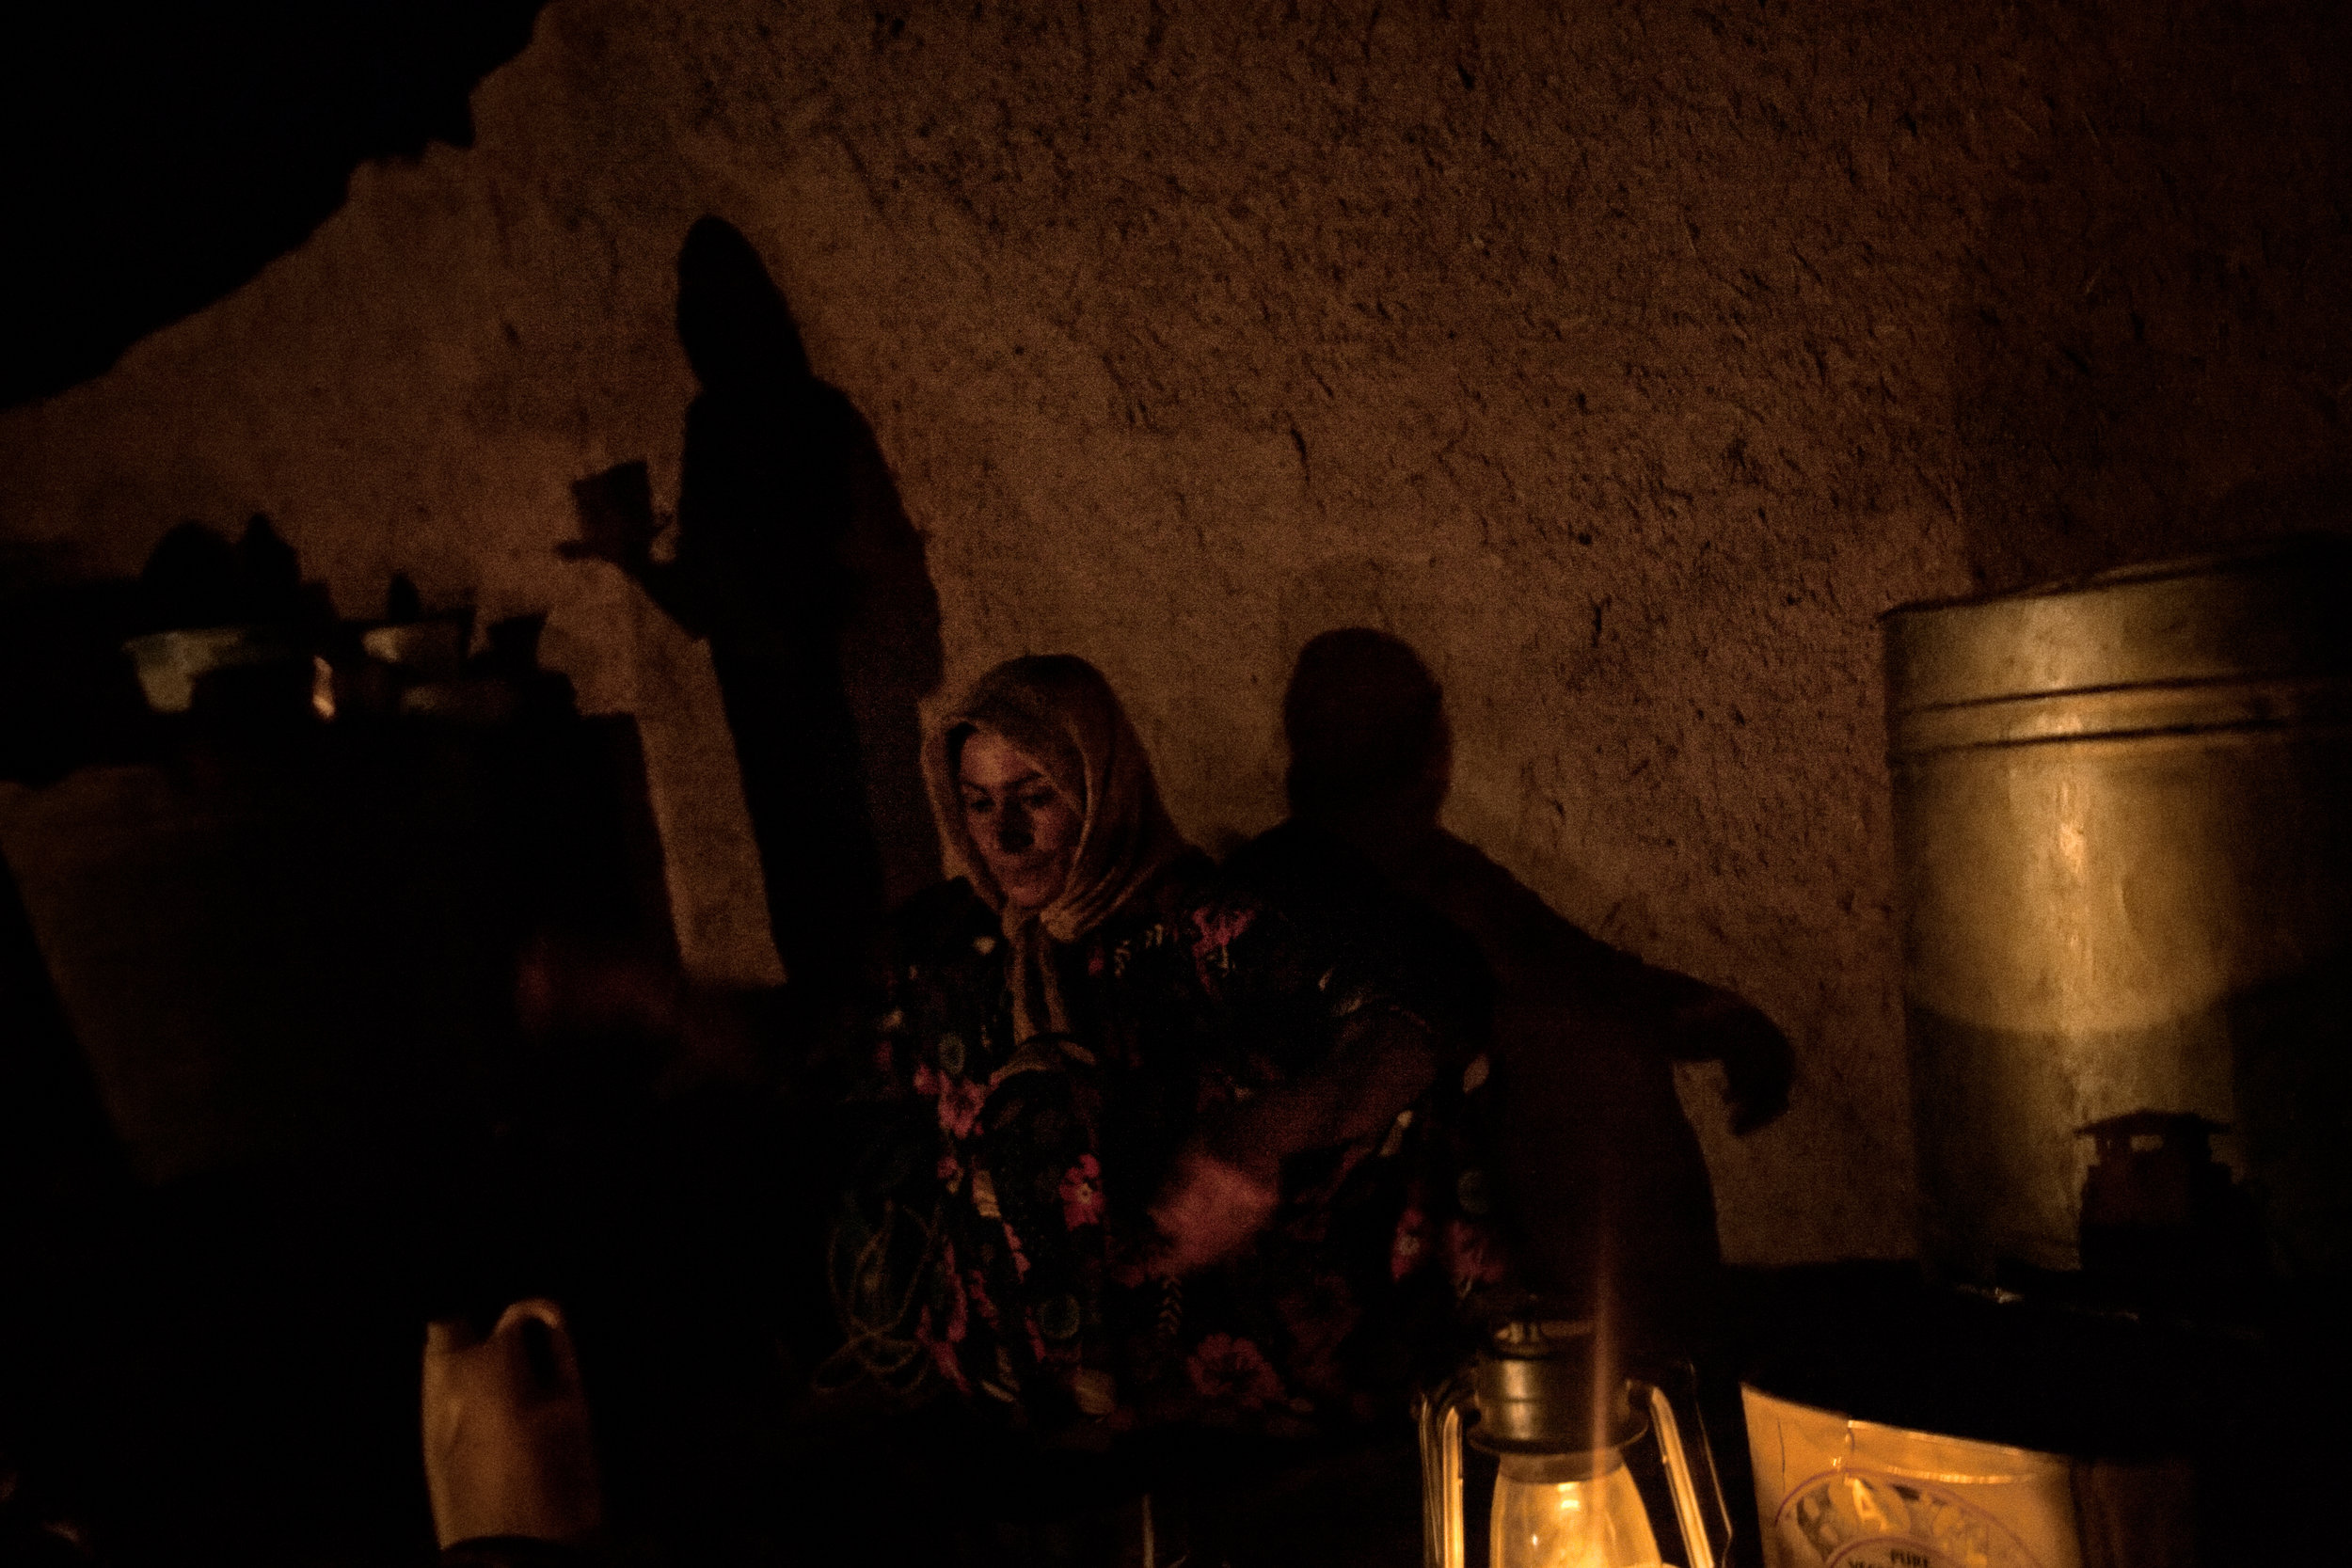 Kharaman Ibrahim Mohammed washes dishes by the light of a lantern in Showara, Kifree District, Kurdistan, Iraq on July 3, 2010.